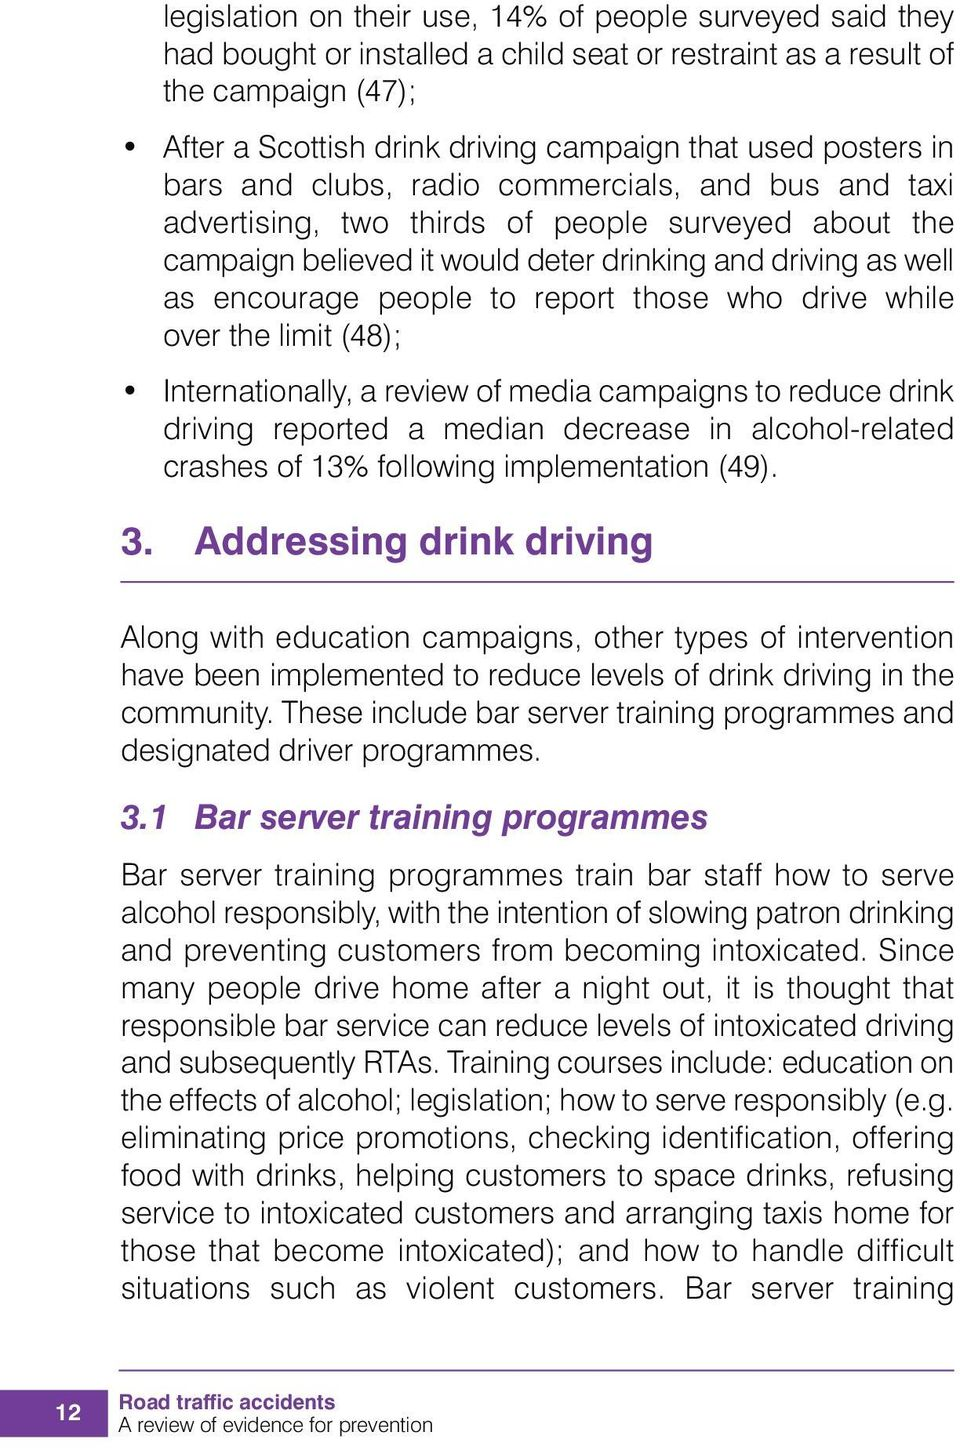 to report those who drive while over the limit (48); Internationally, a review of media campaigns to reduce drink driving reported a median decrease in alcohol-related crashes of 13% following